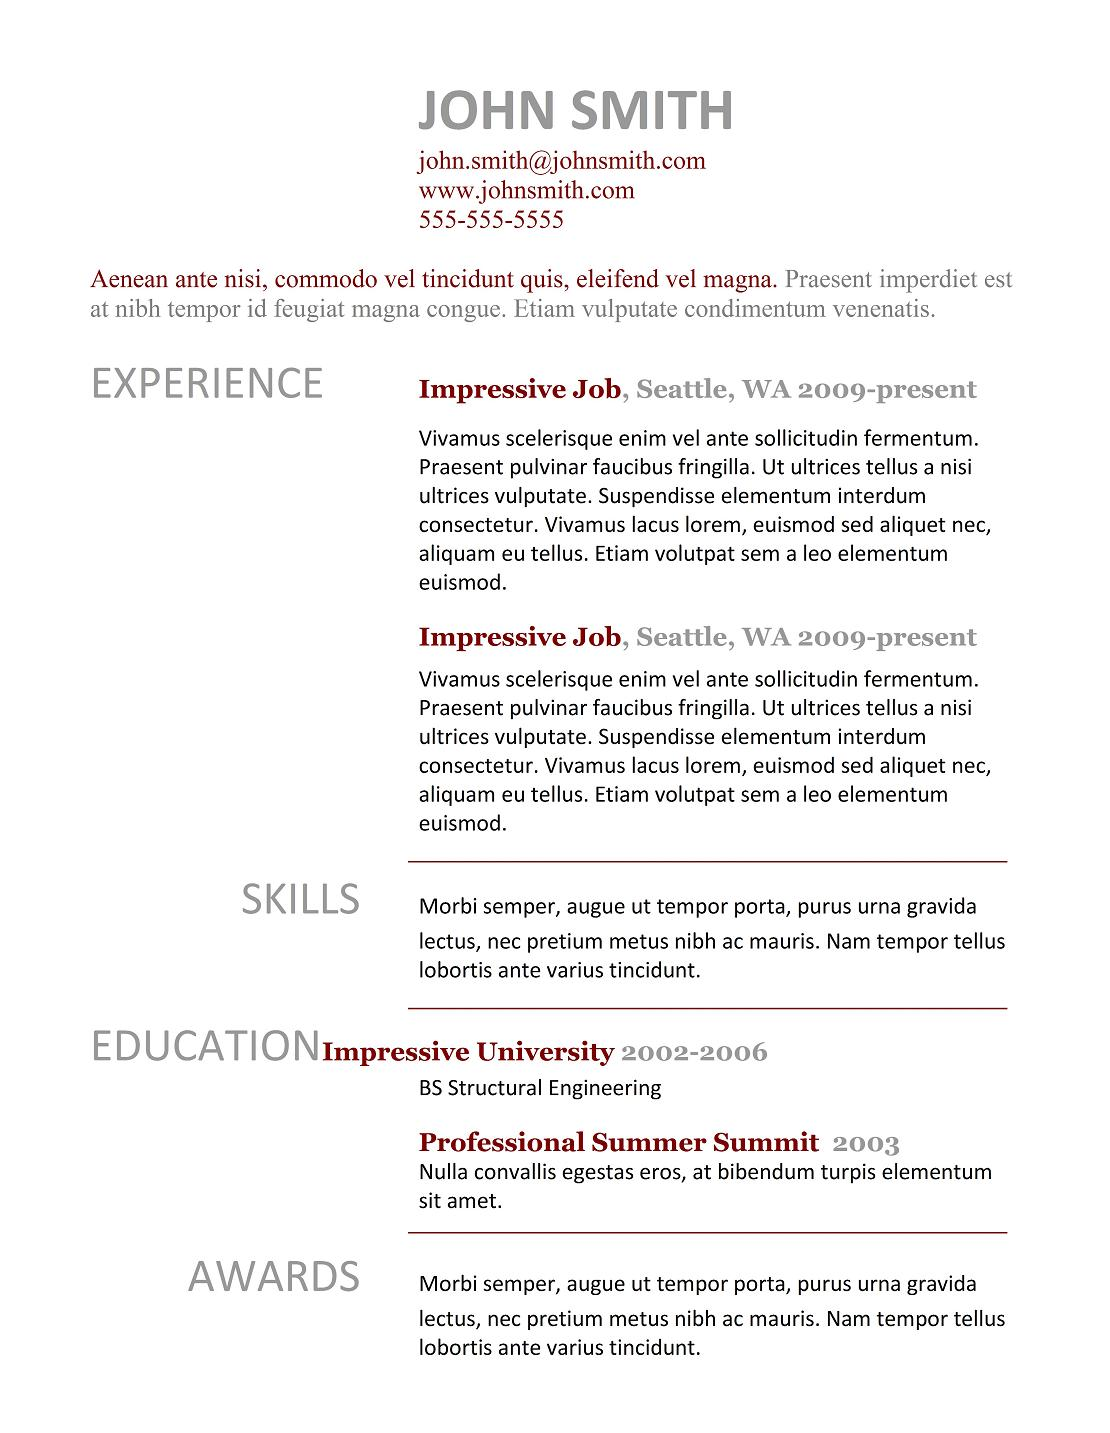 Professional Resume Length 7 Simple Resume Templates Free Download Best